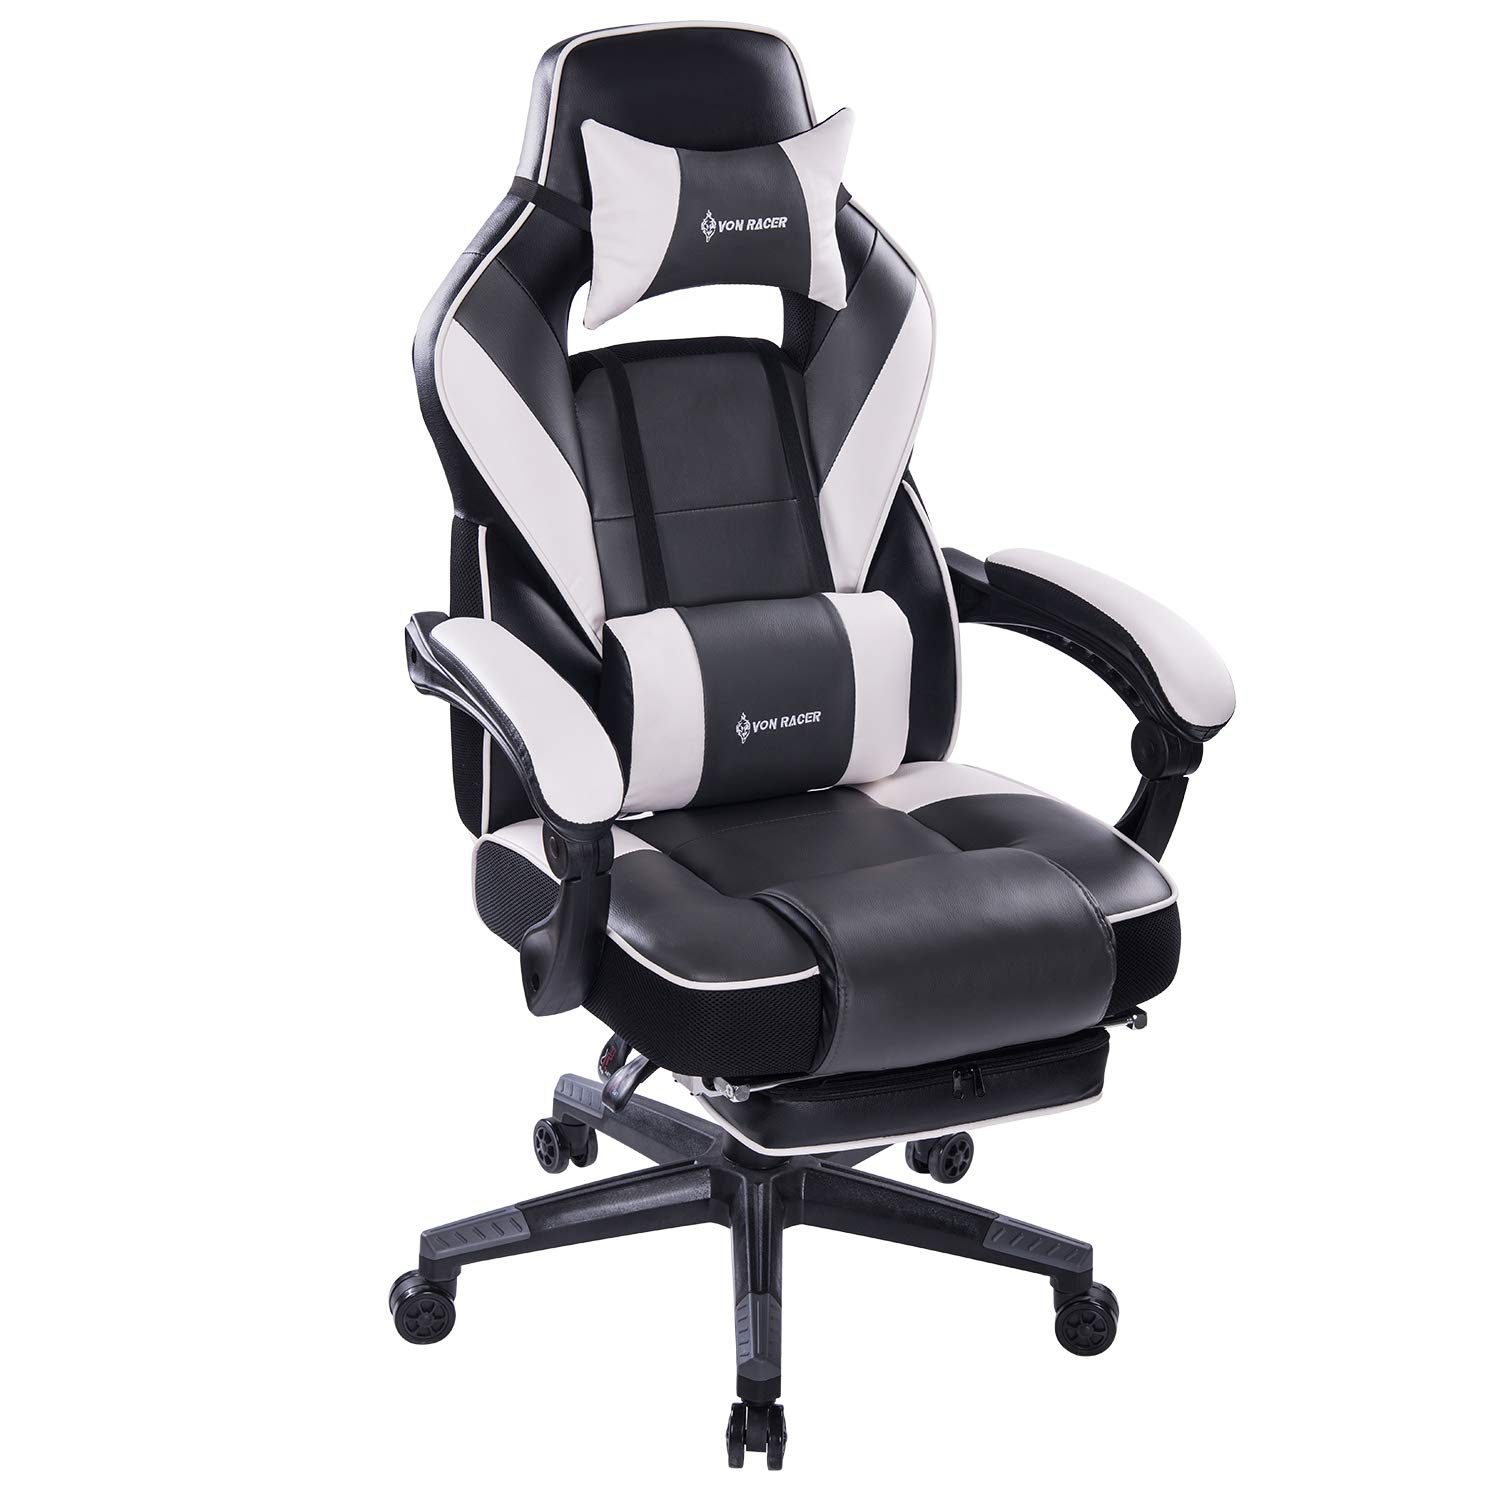 KILLABEE Massage Reclining Gaming Chair - Ergonomic High-Back Racing Computer Desk Office Chair with Retractable Footrest and Adjustable Lumbar Cushion (Gray/White)